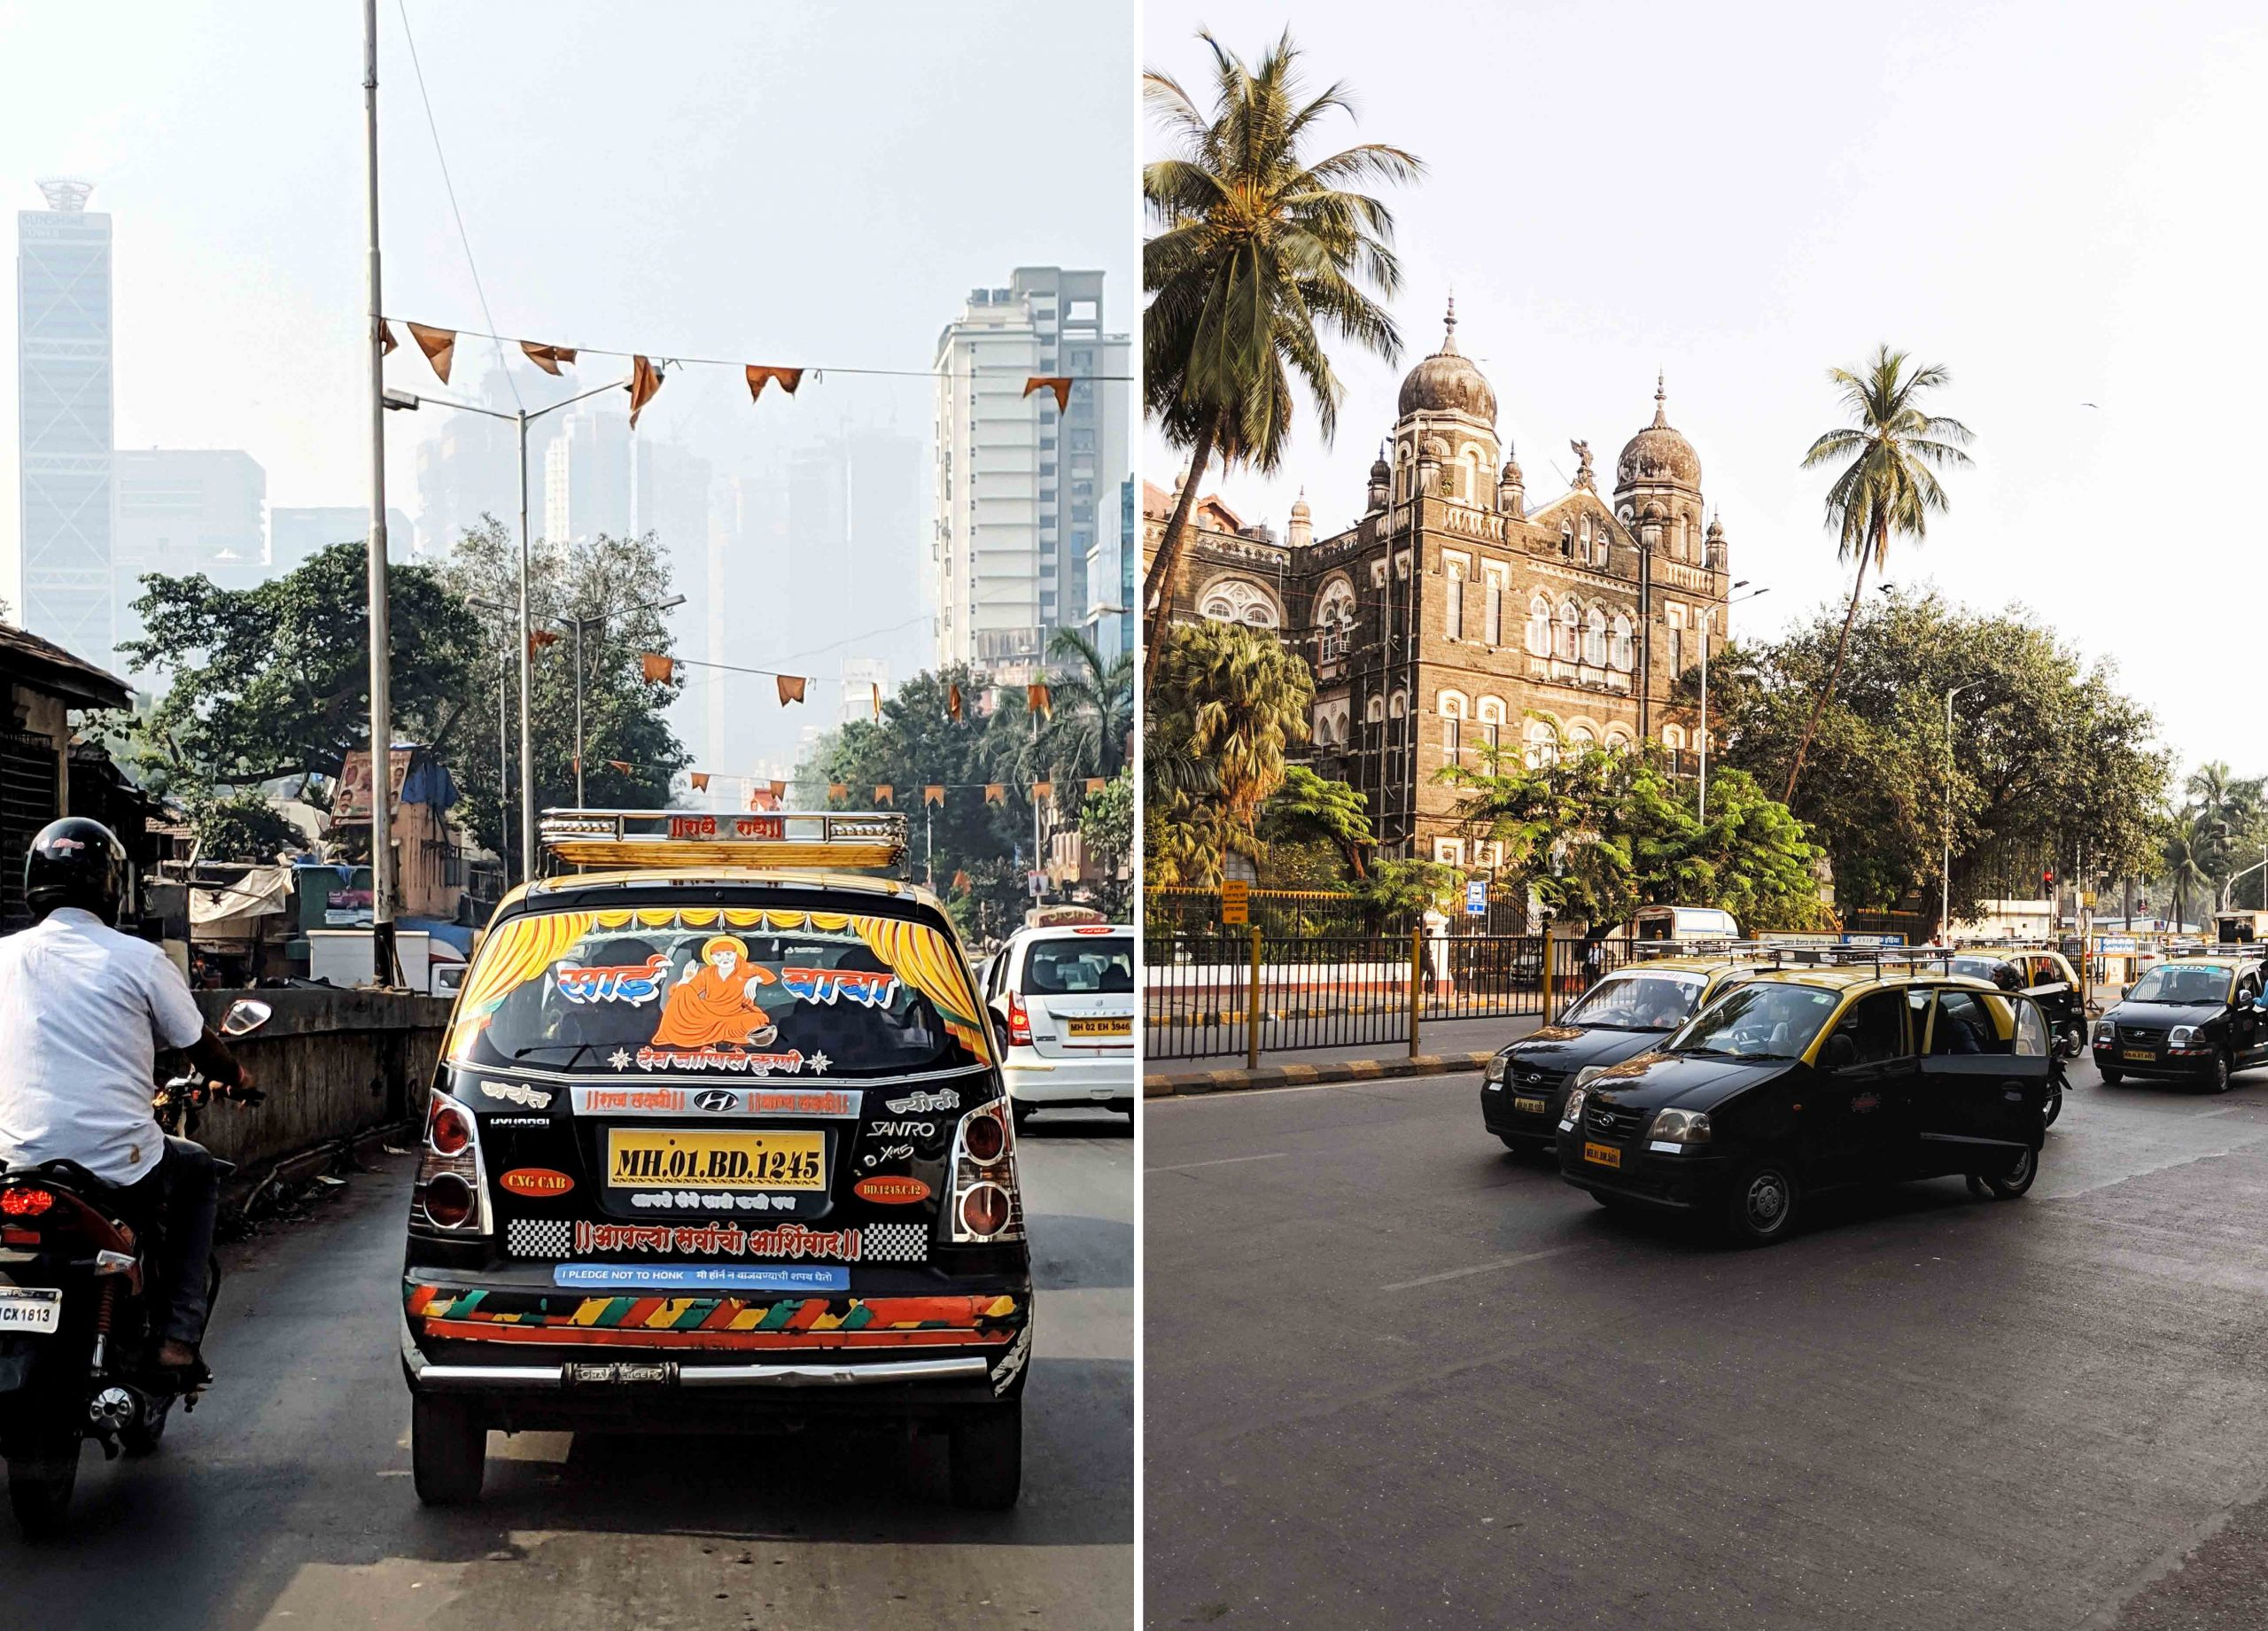 Taxi in south Mumbai can often be a cheap way of getting around the Indian city